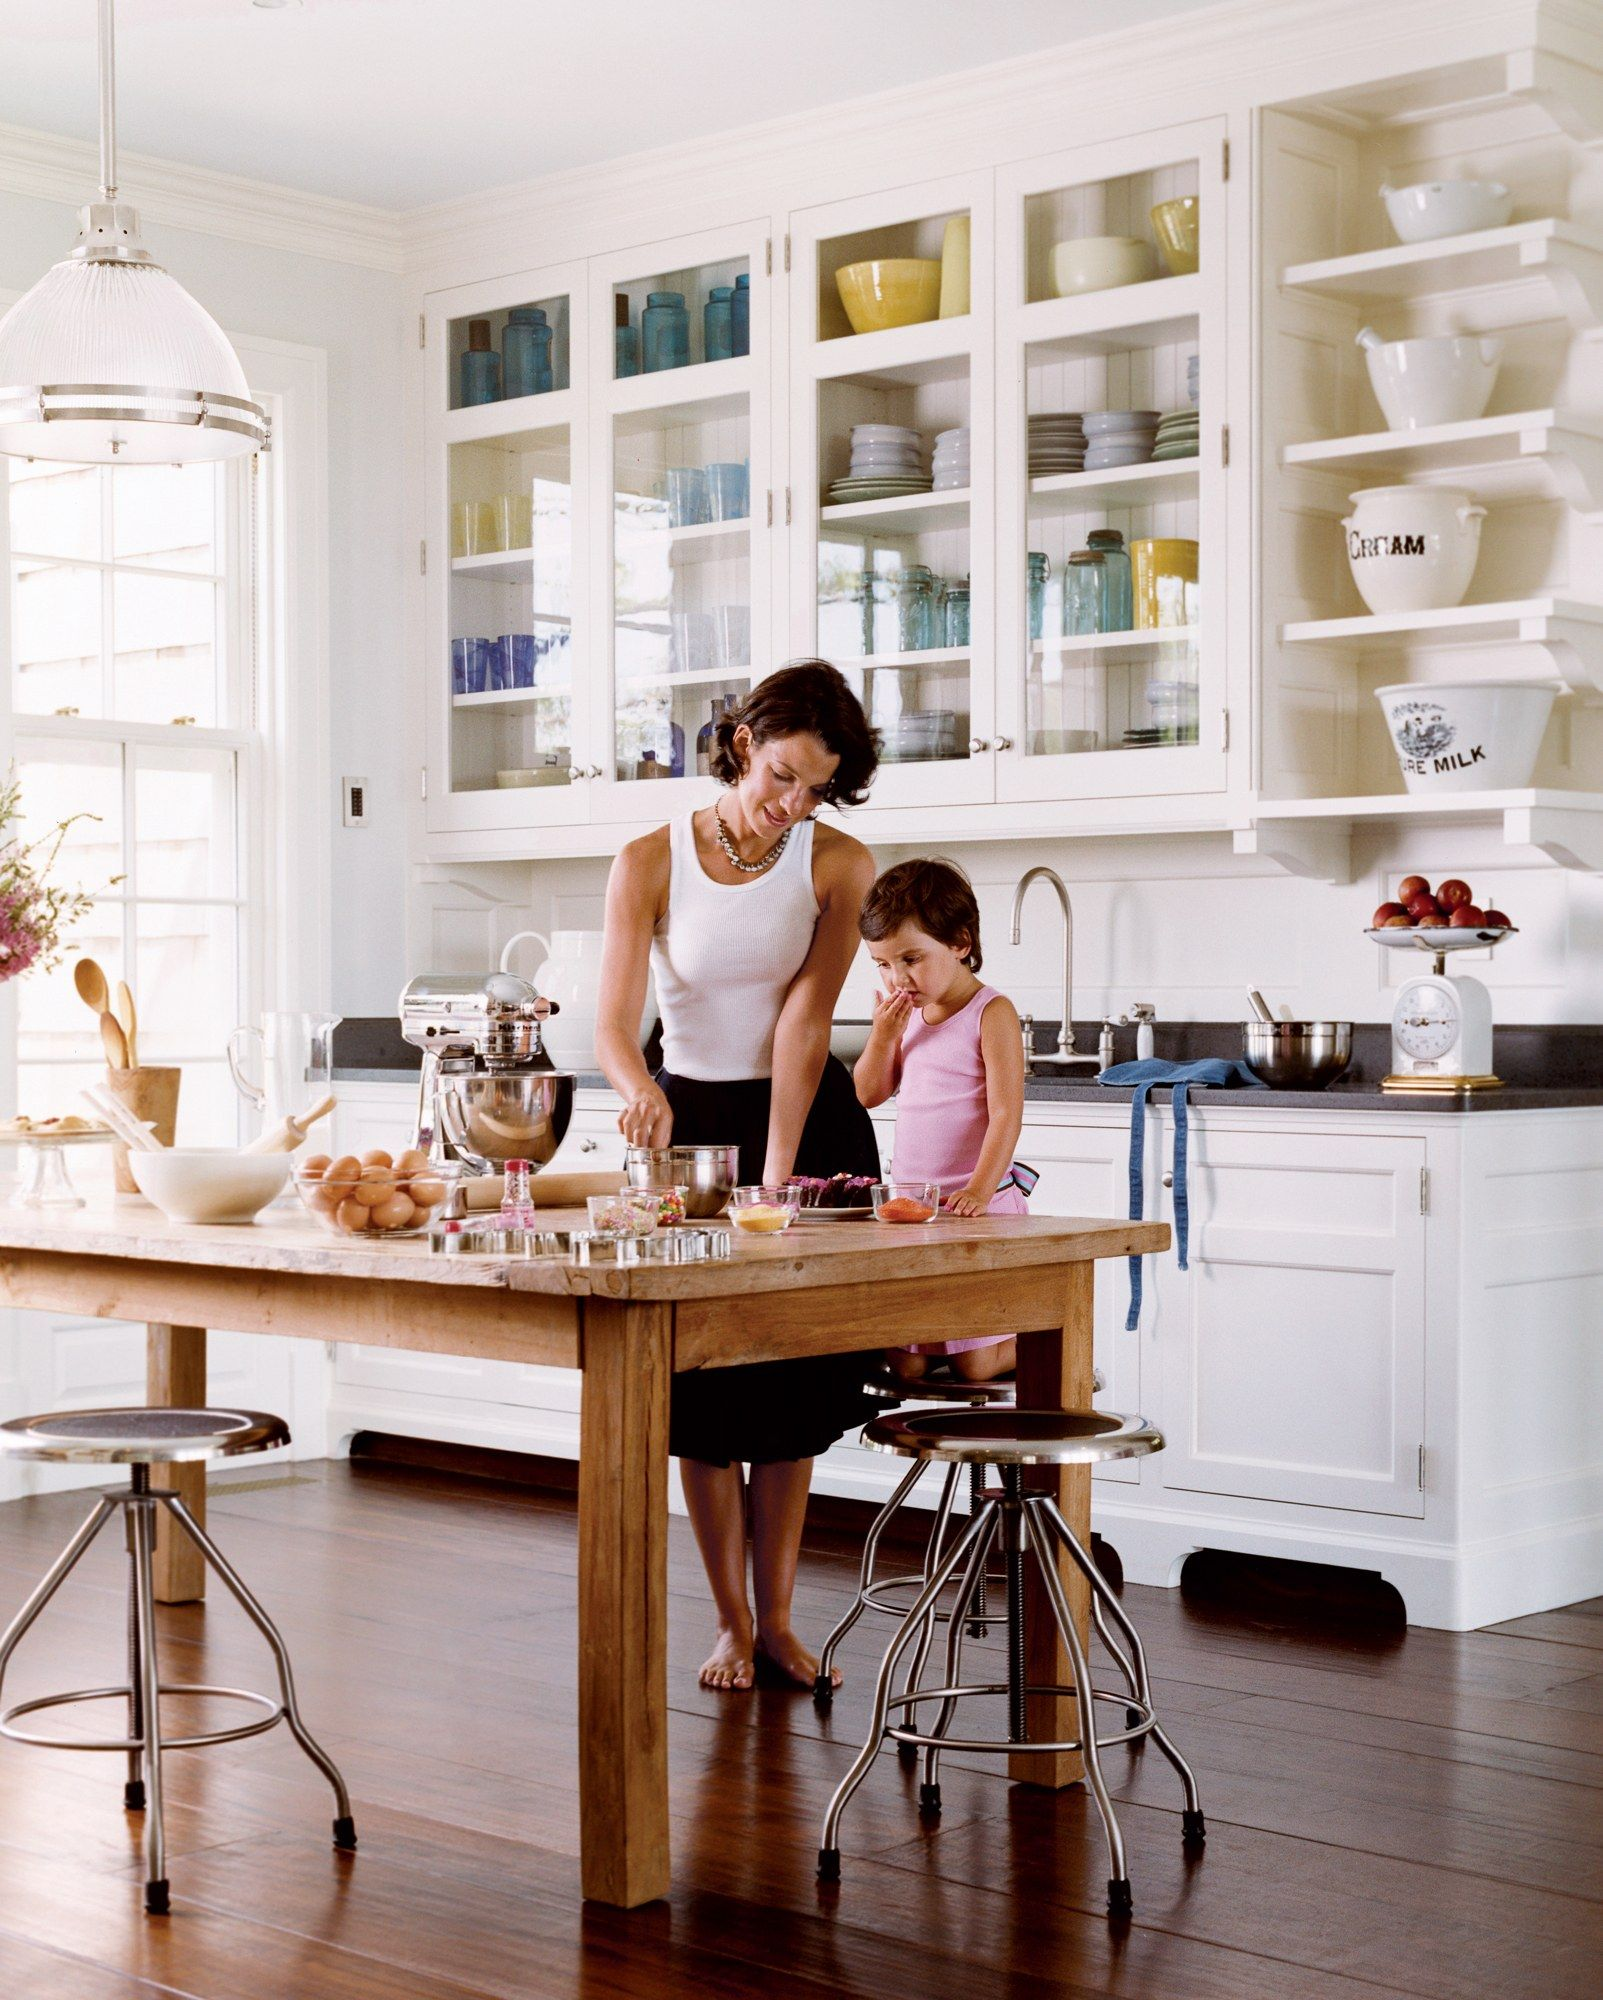 Best Kitchens Photographed In Vogue Beautiful Kitchens Kitchen Inspirations Kitchen Decor